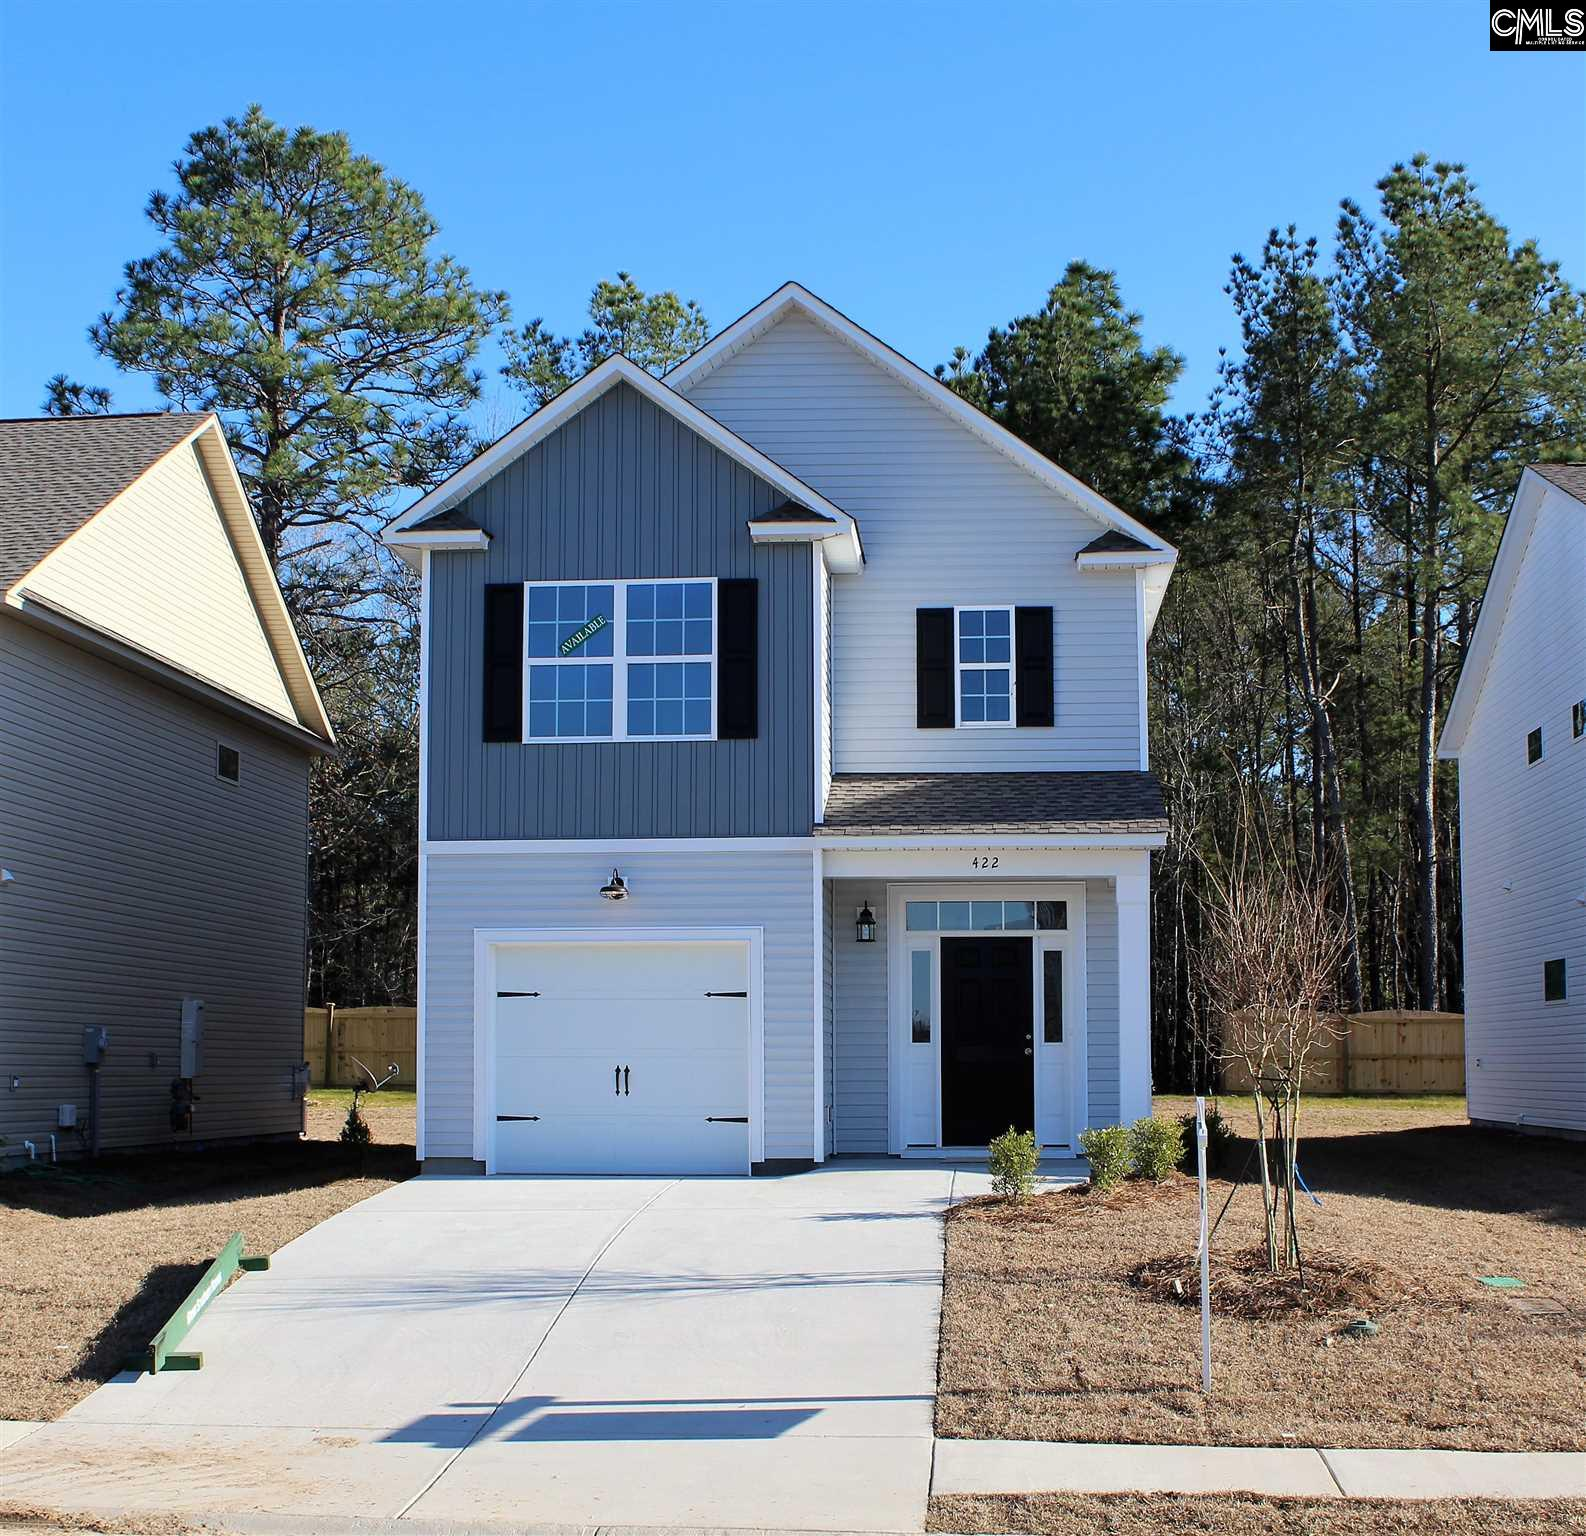 422 Fairford Blythewood, SC 29016